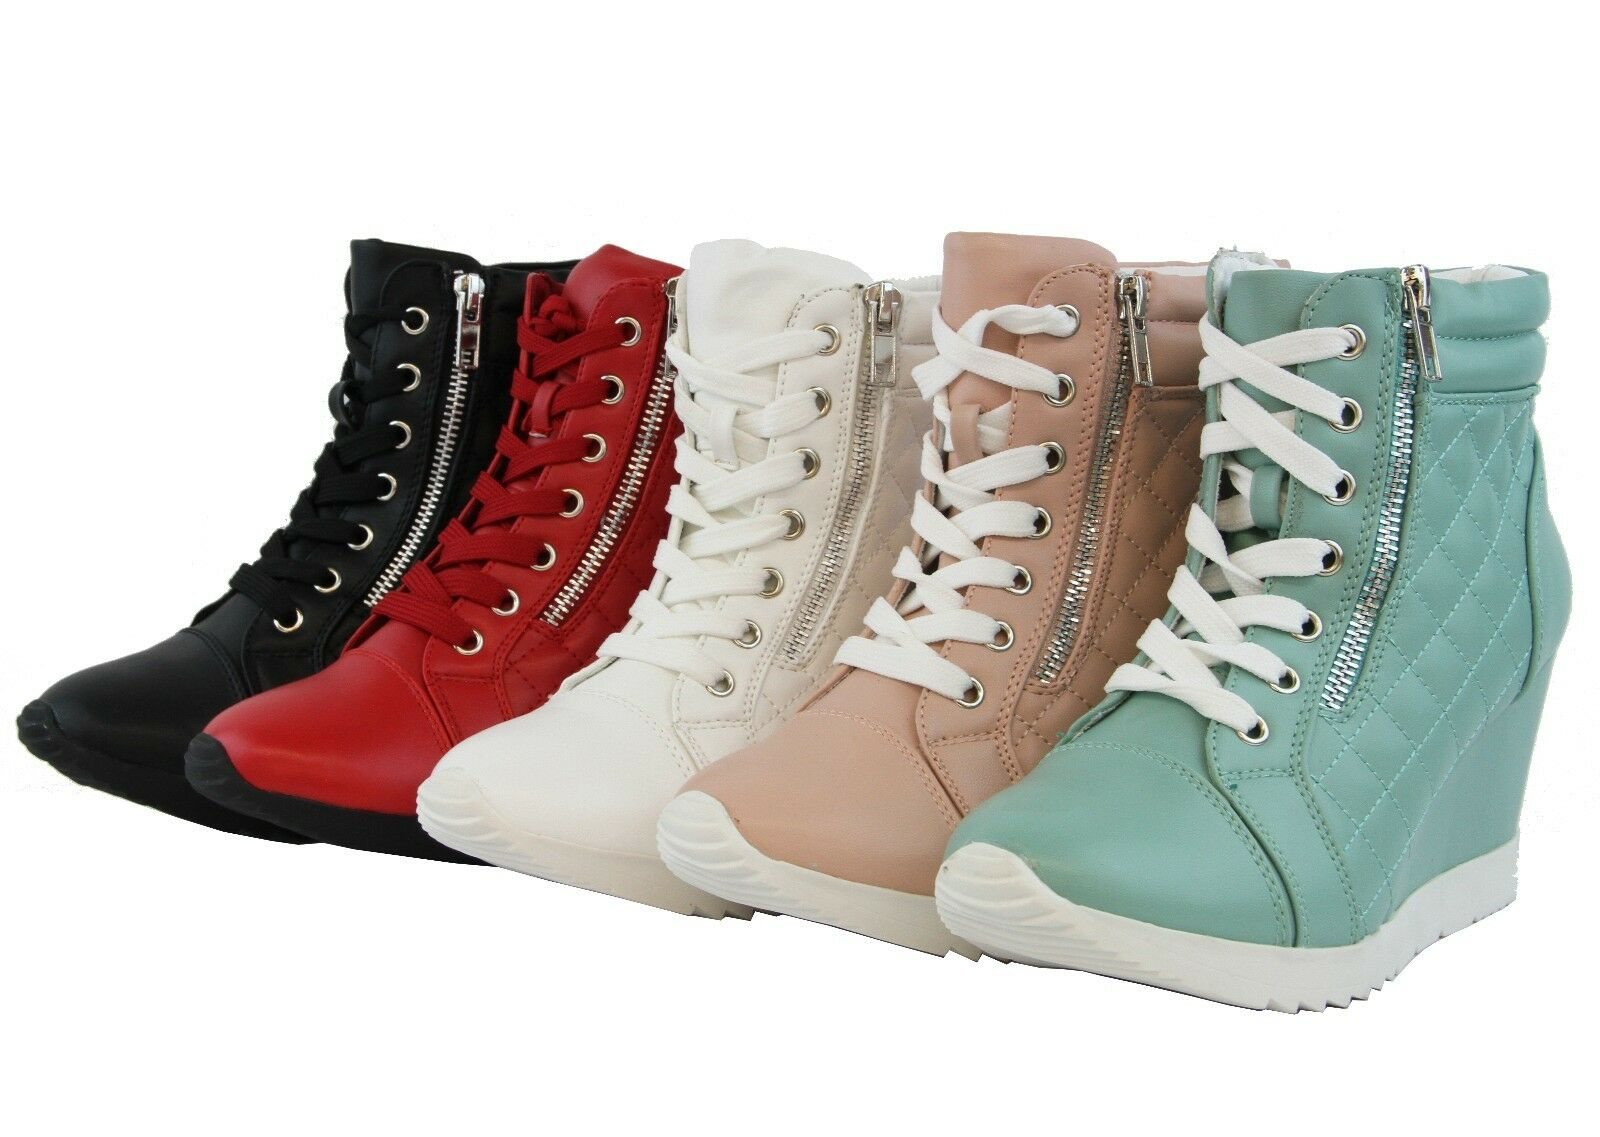 High Top Ankle High Hidden Wedge Heel Sneaker Quilted Boots Design Lace Up Shoes